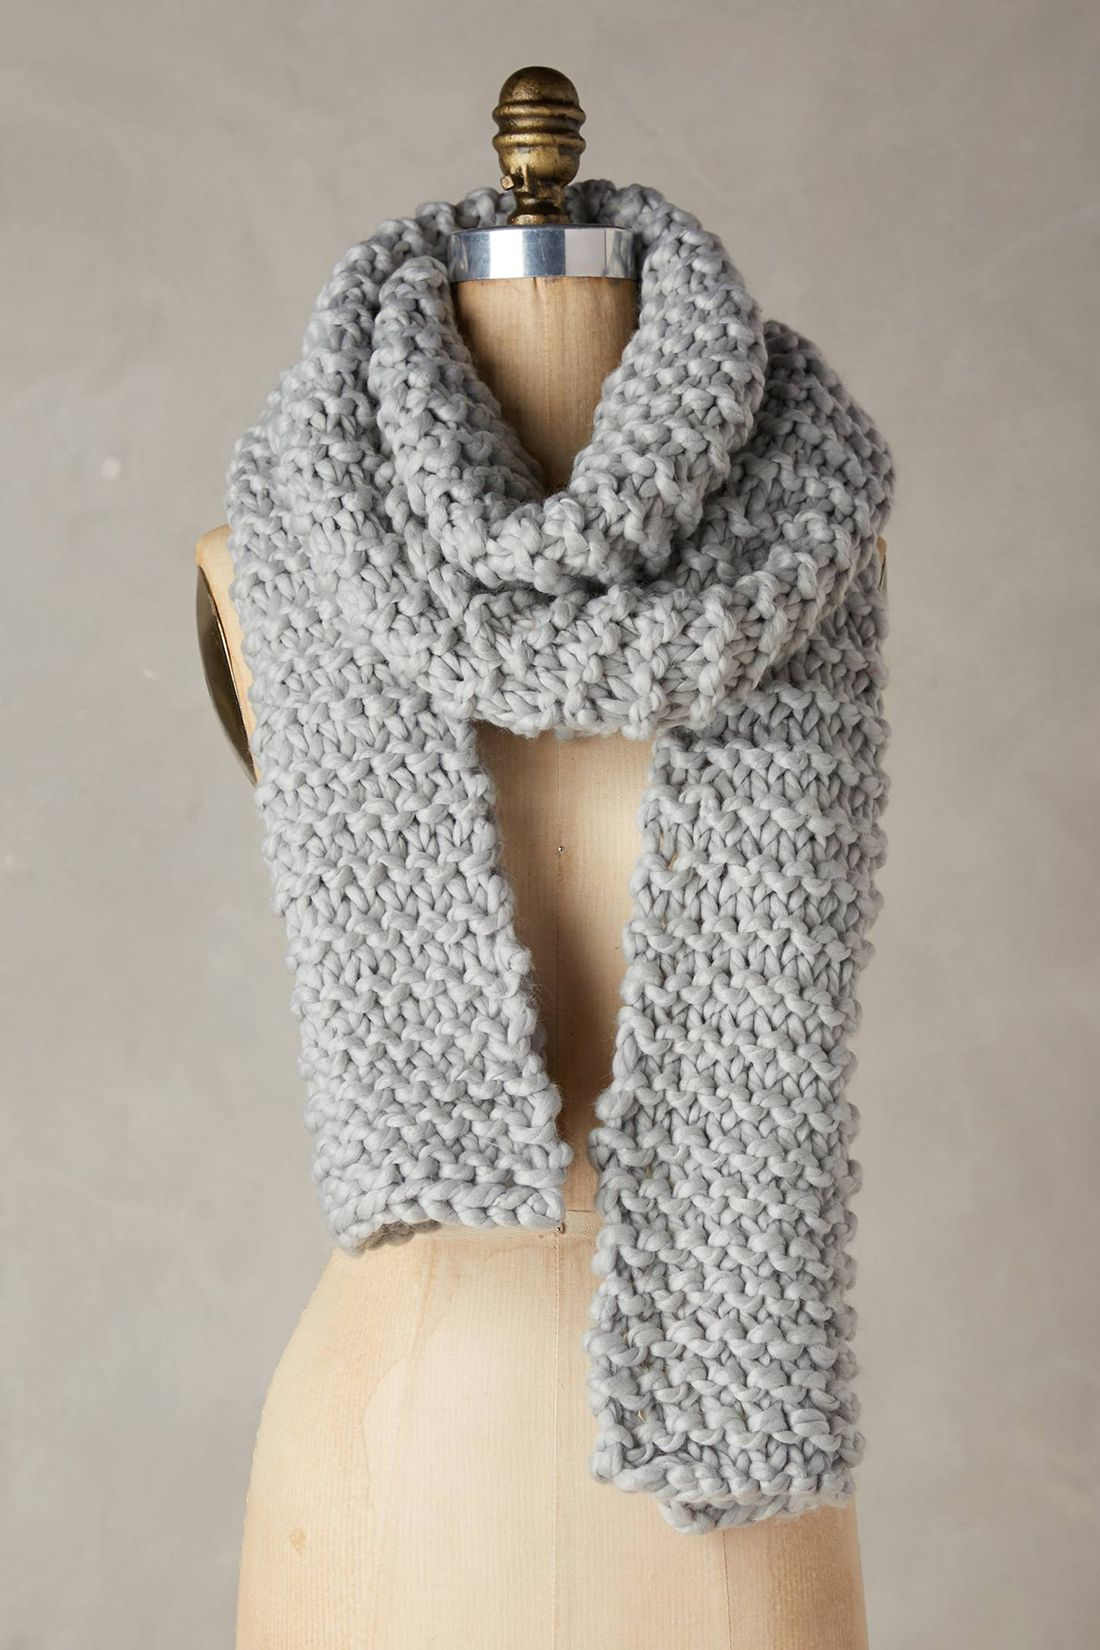 5 Lauren Conrad Approved Gifts You Can Totally Diy Winter Wardrobe Essentials Clothes Design Fashion